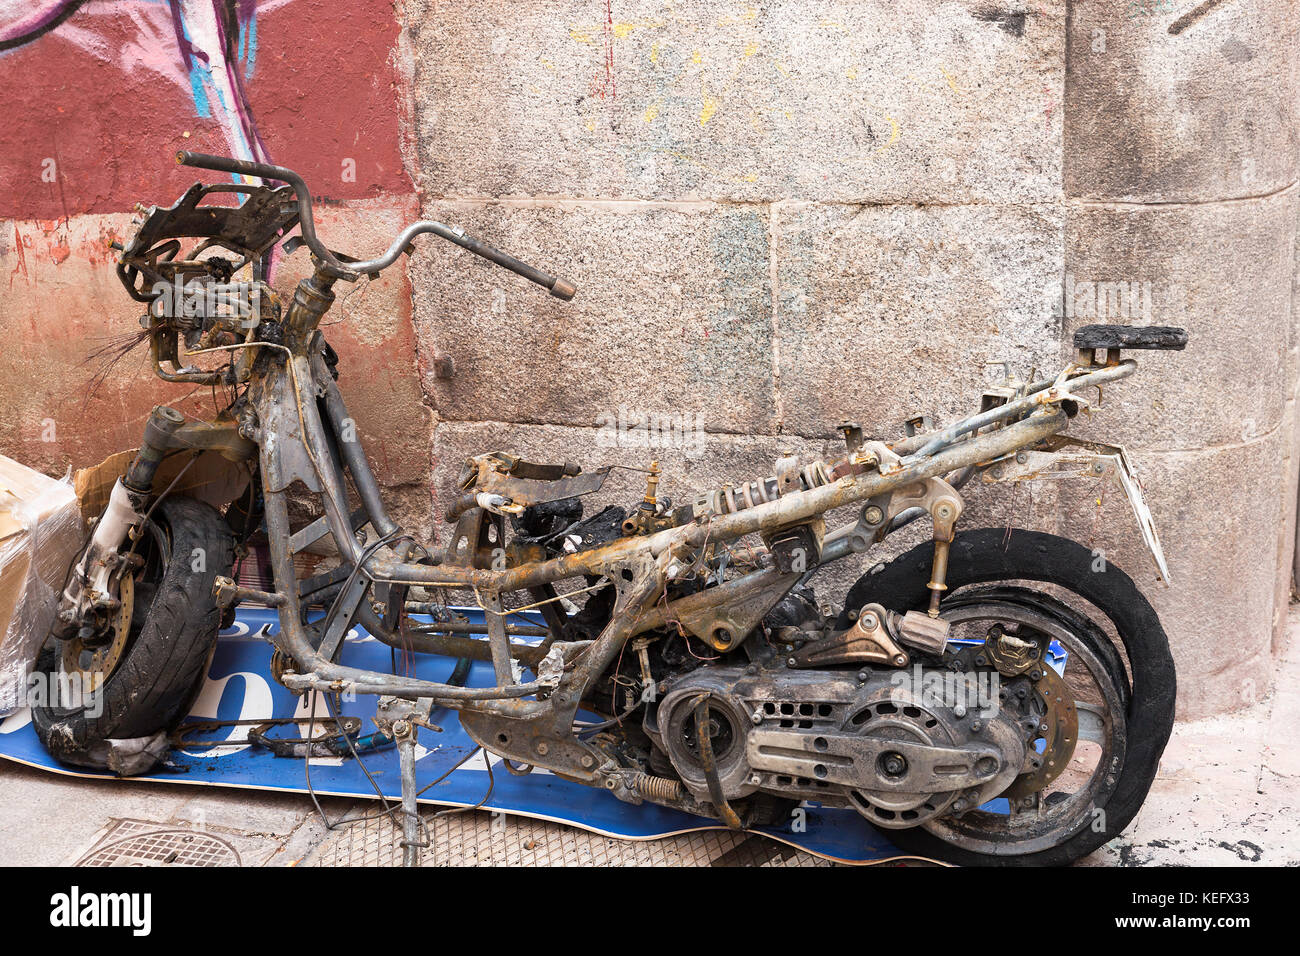 Burnt motorcycle in the street rested on a wall. Vandalism action - Stock Image